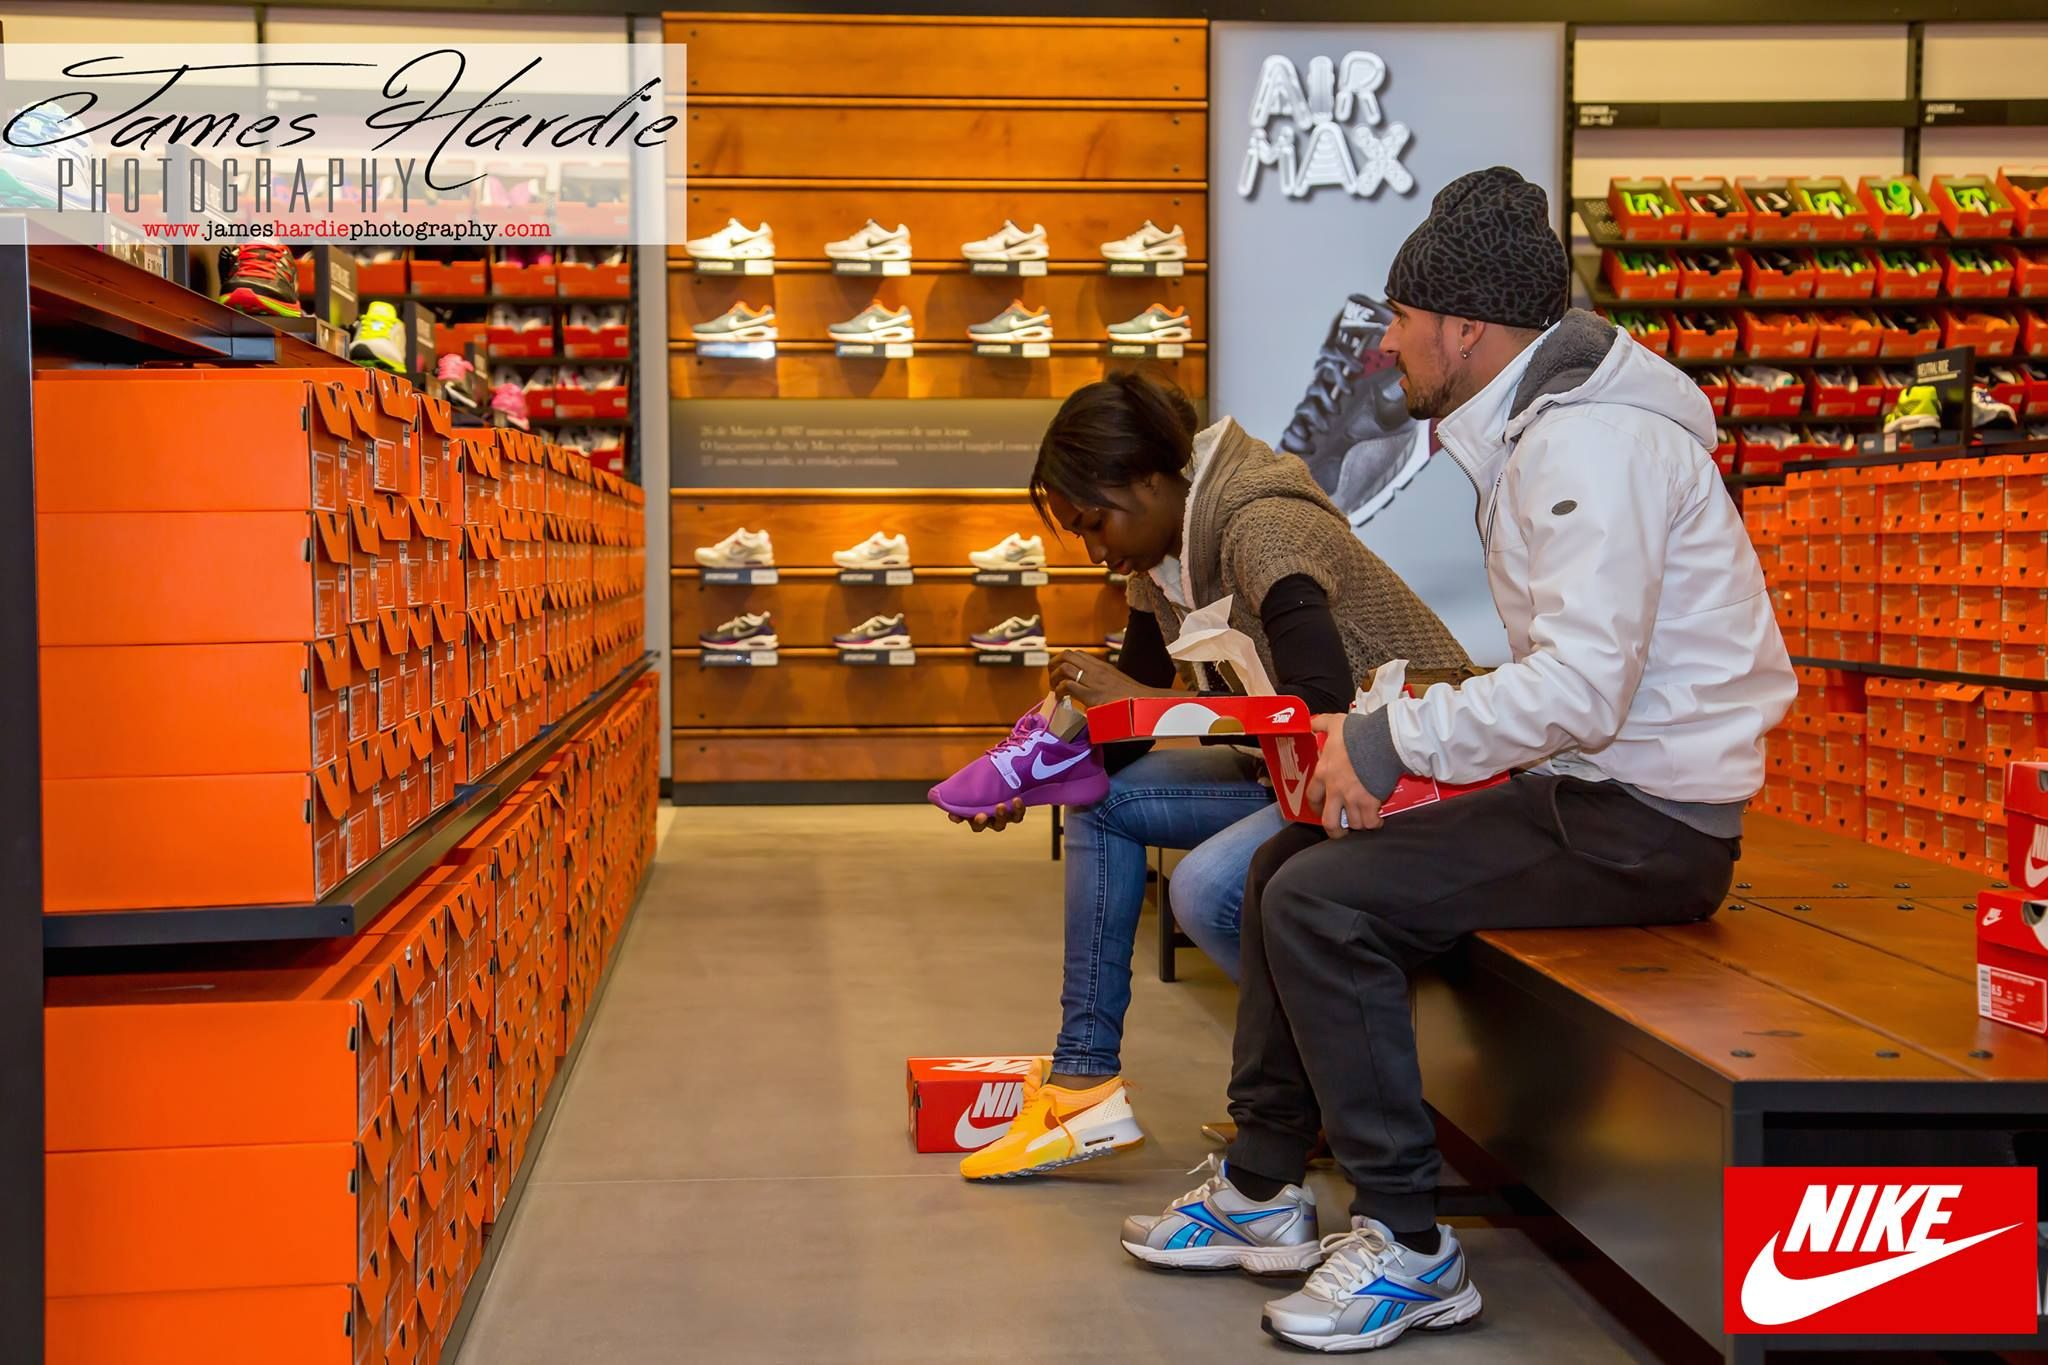 Pegajoso Caducado Prominente  Have you checked out the New Nike Factory Store yet?